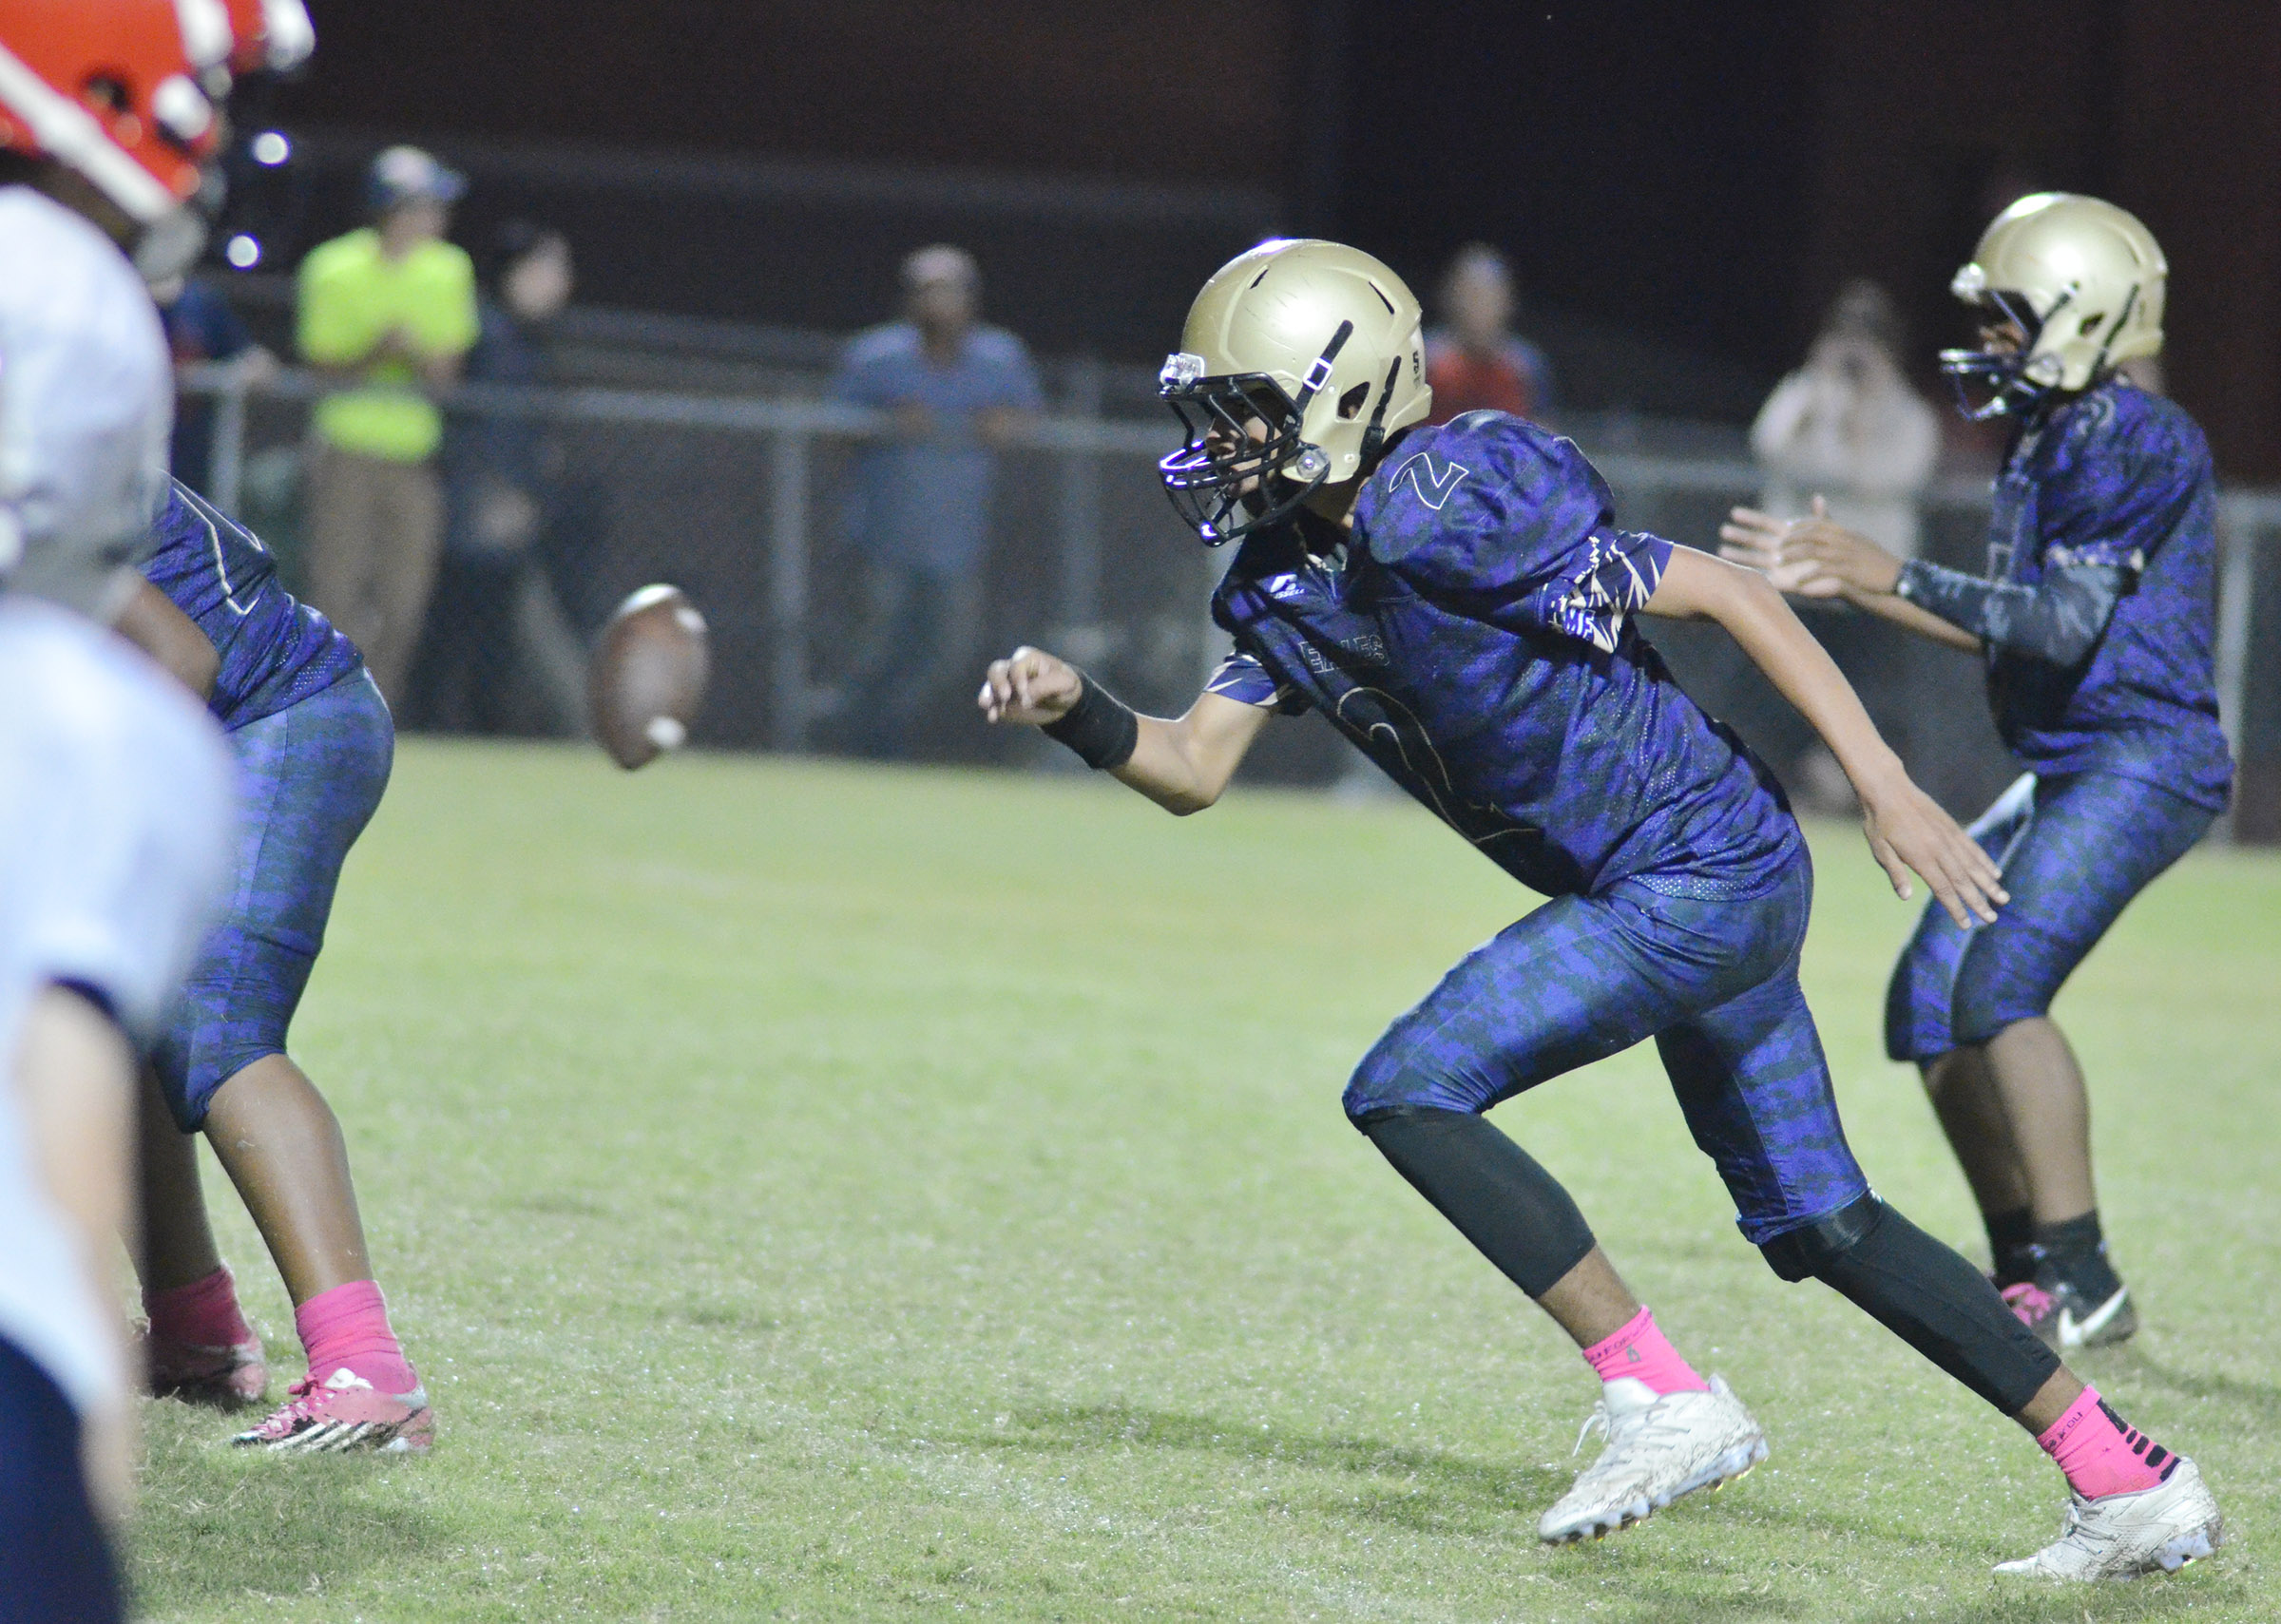 CMS eighth-grader Adrien Smith runs after the snap.